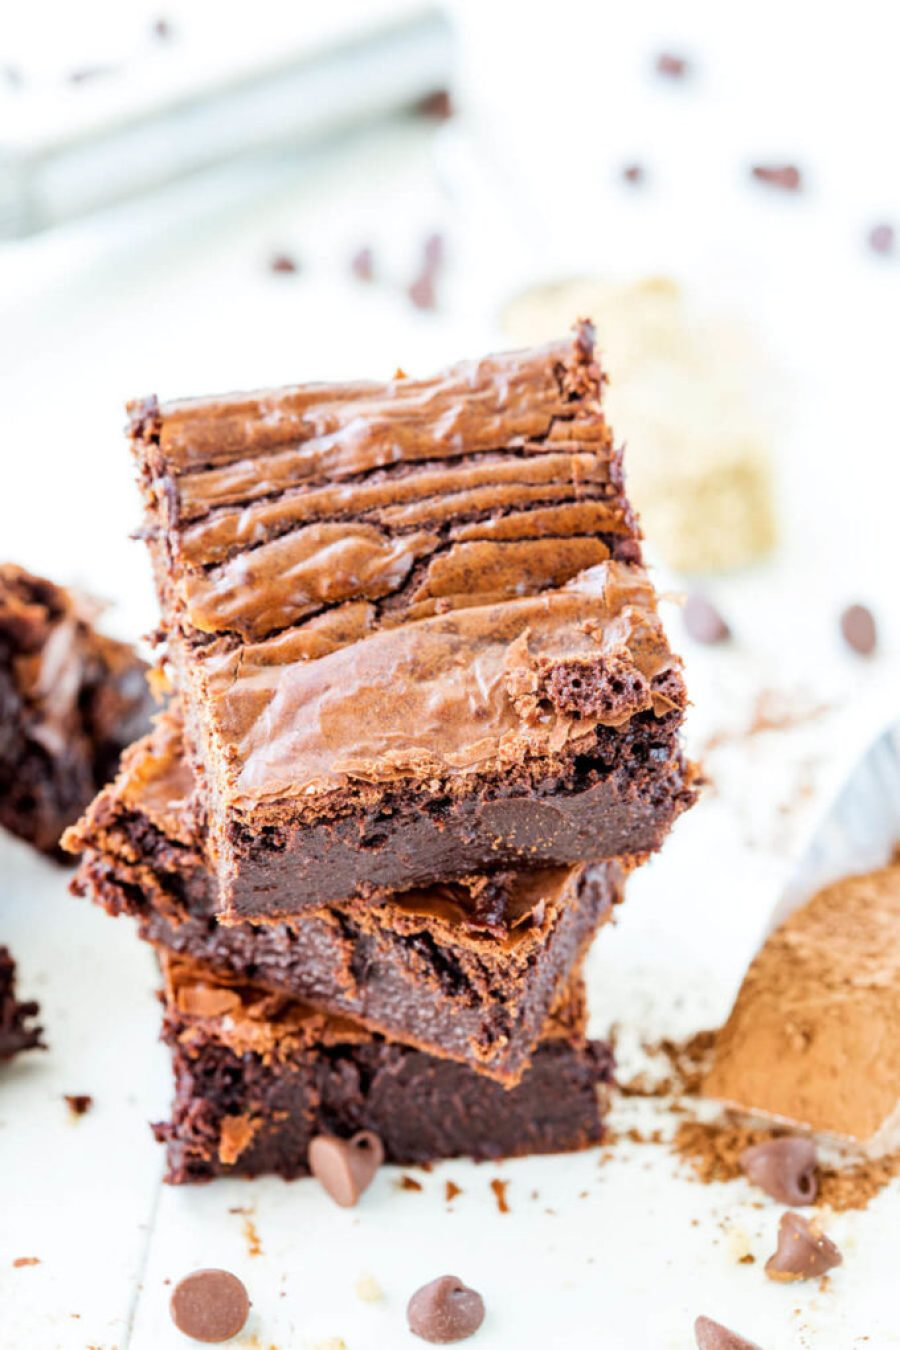 RIch and moist, these fudgy chocolate brownies are so amazing.